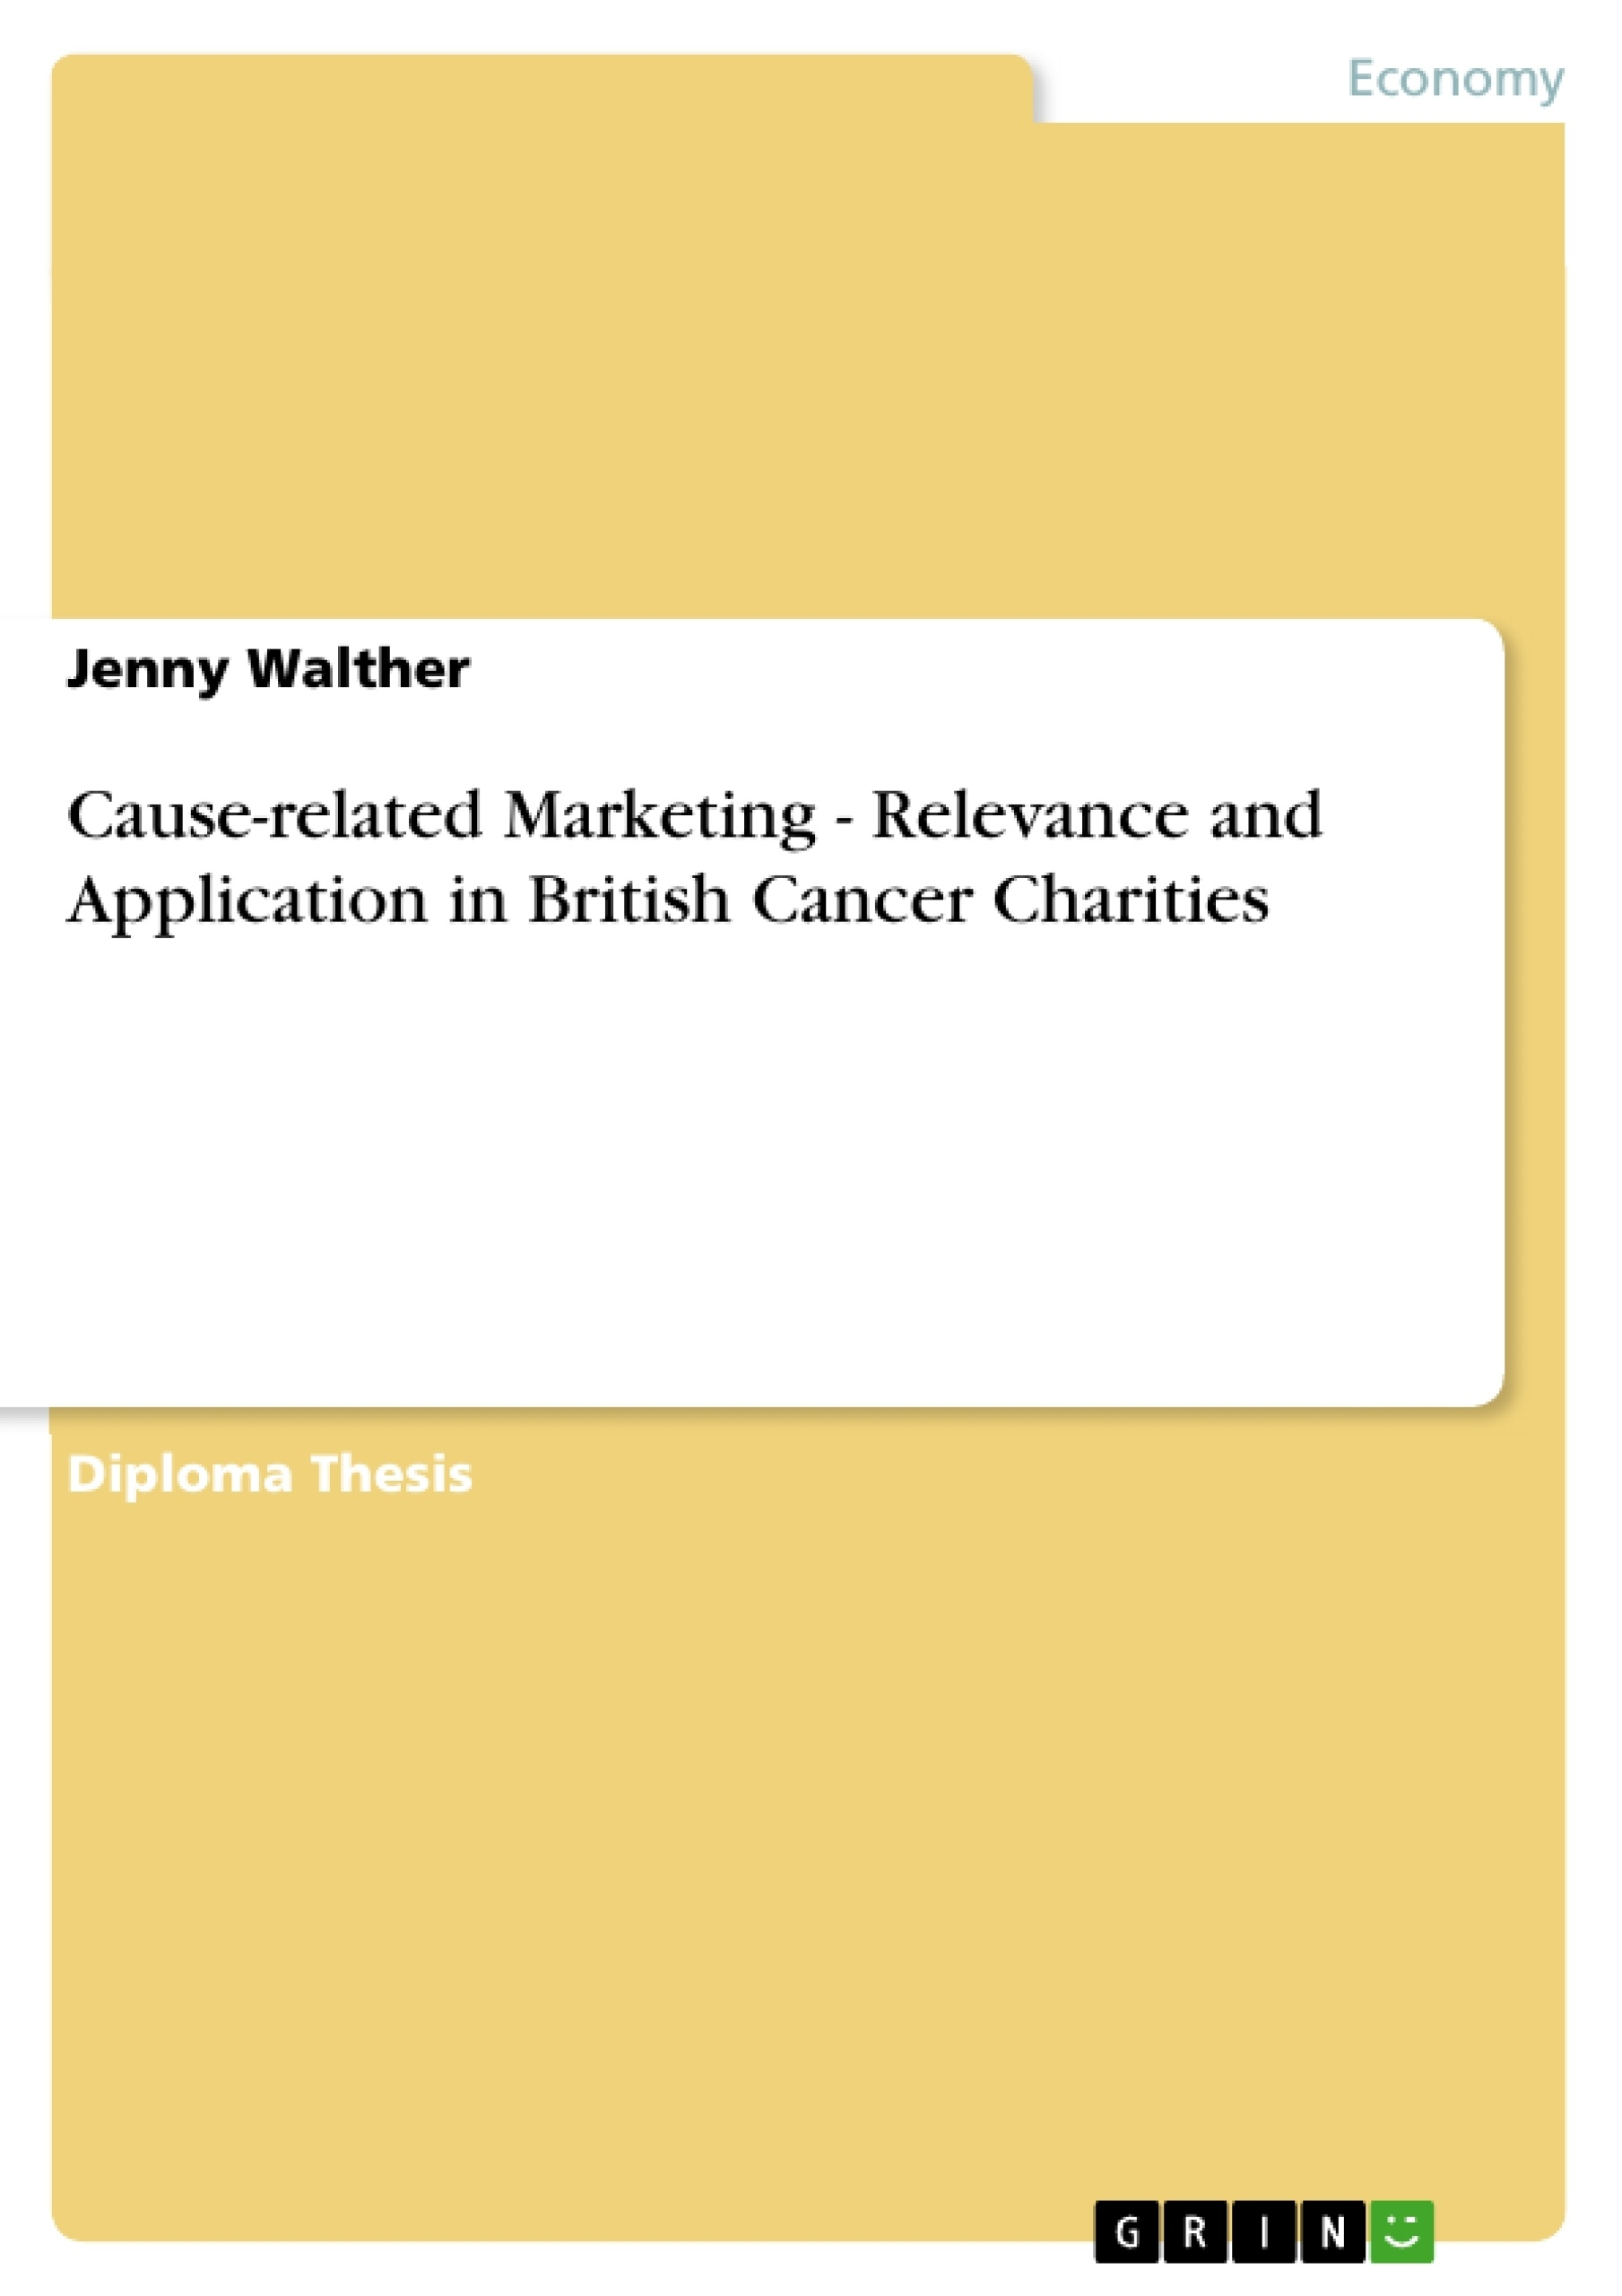 Title: Cause-related Marketing - Relevance and Application in British Cancer Charities